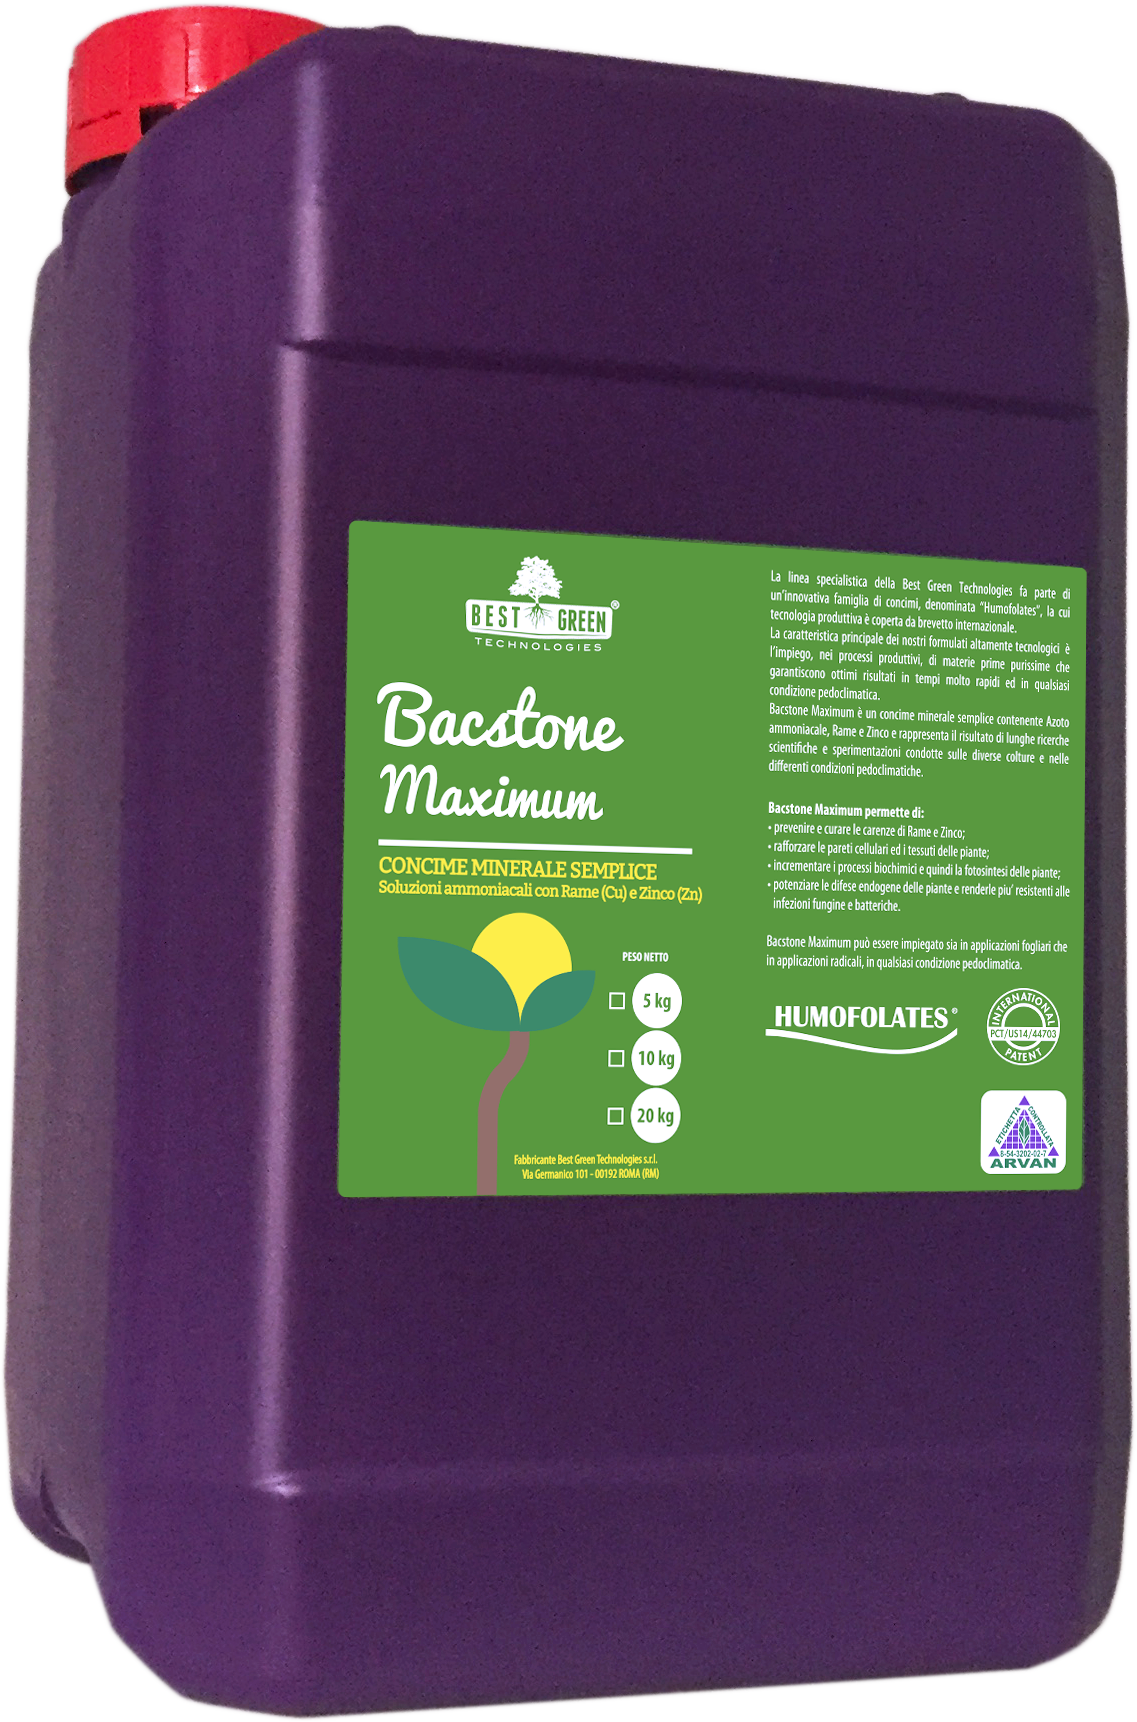 Bacstone Maximum